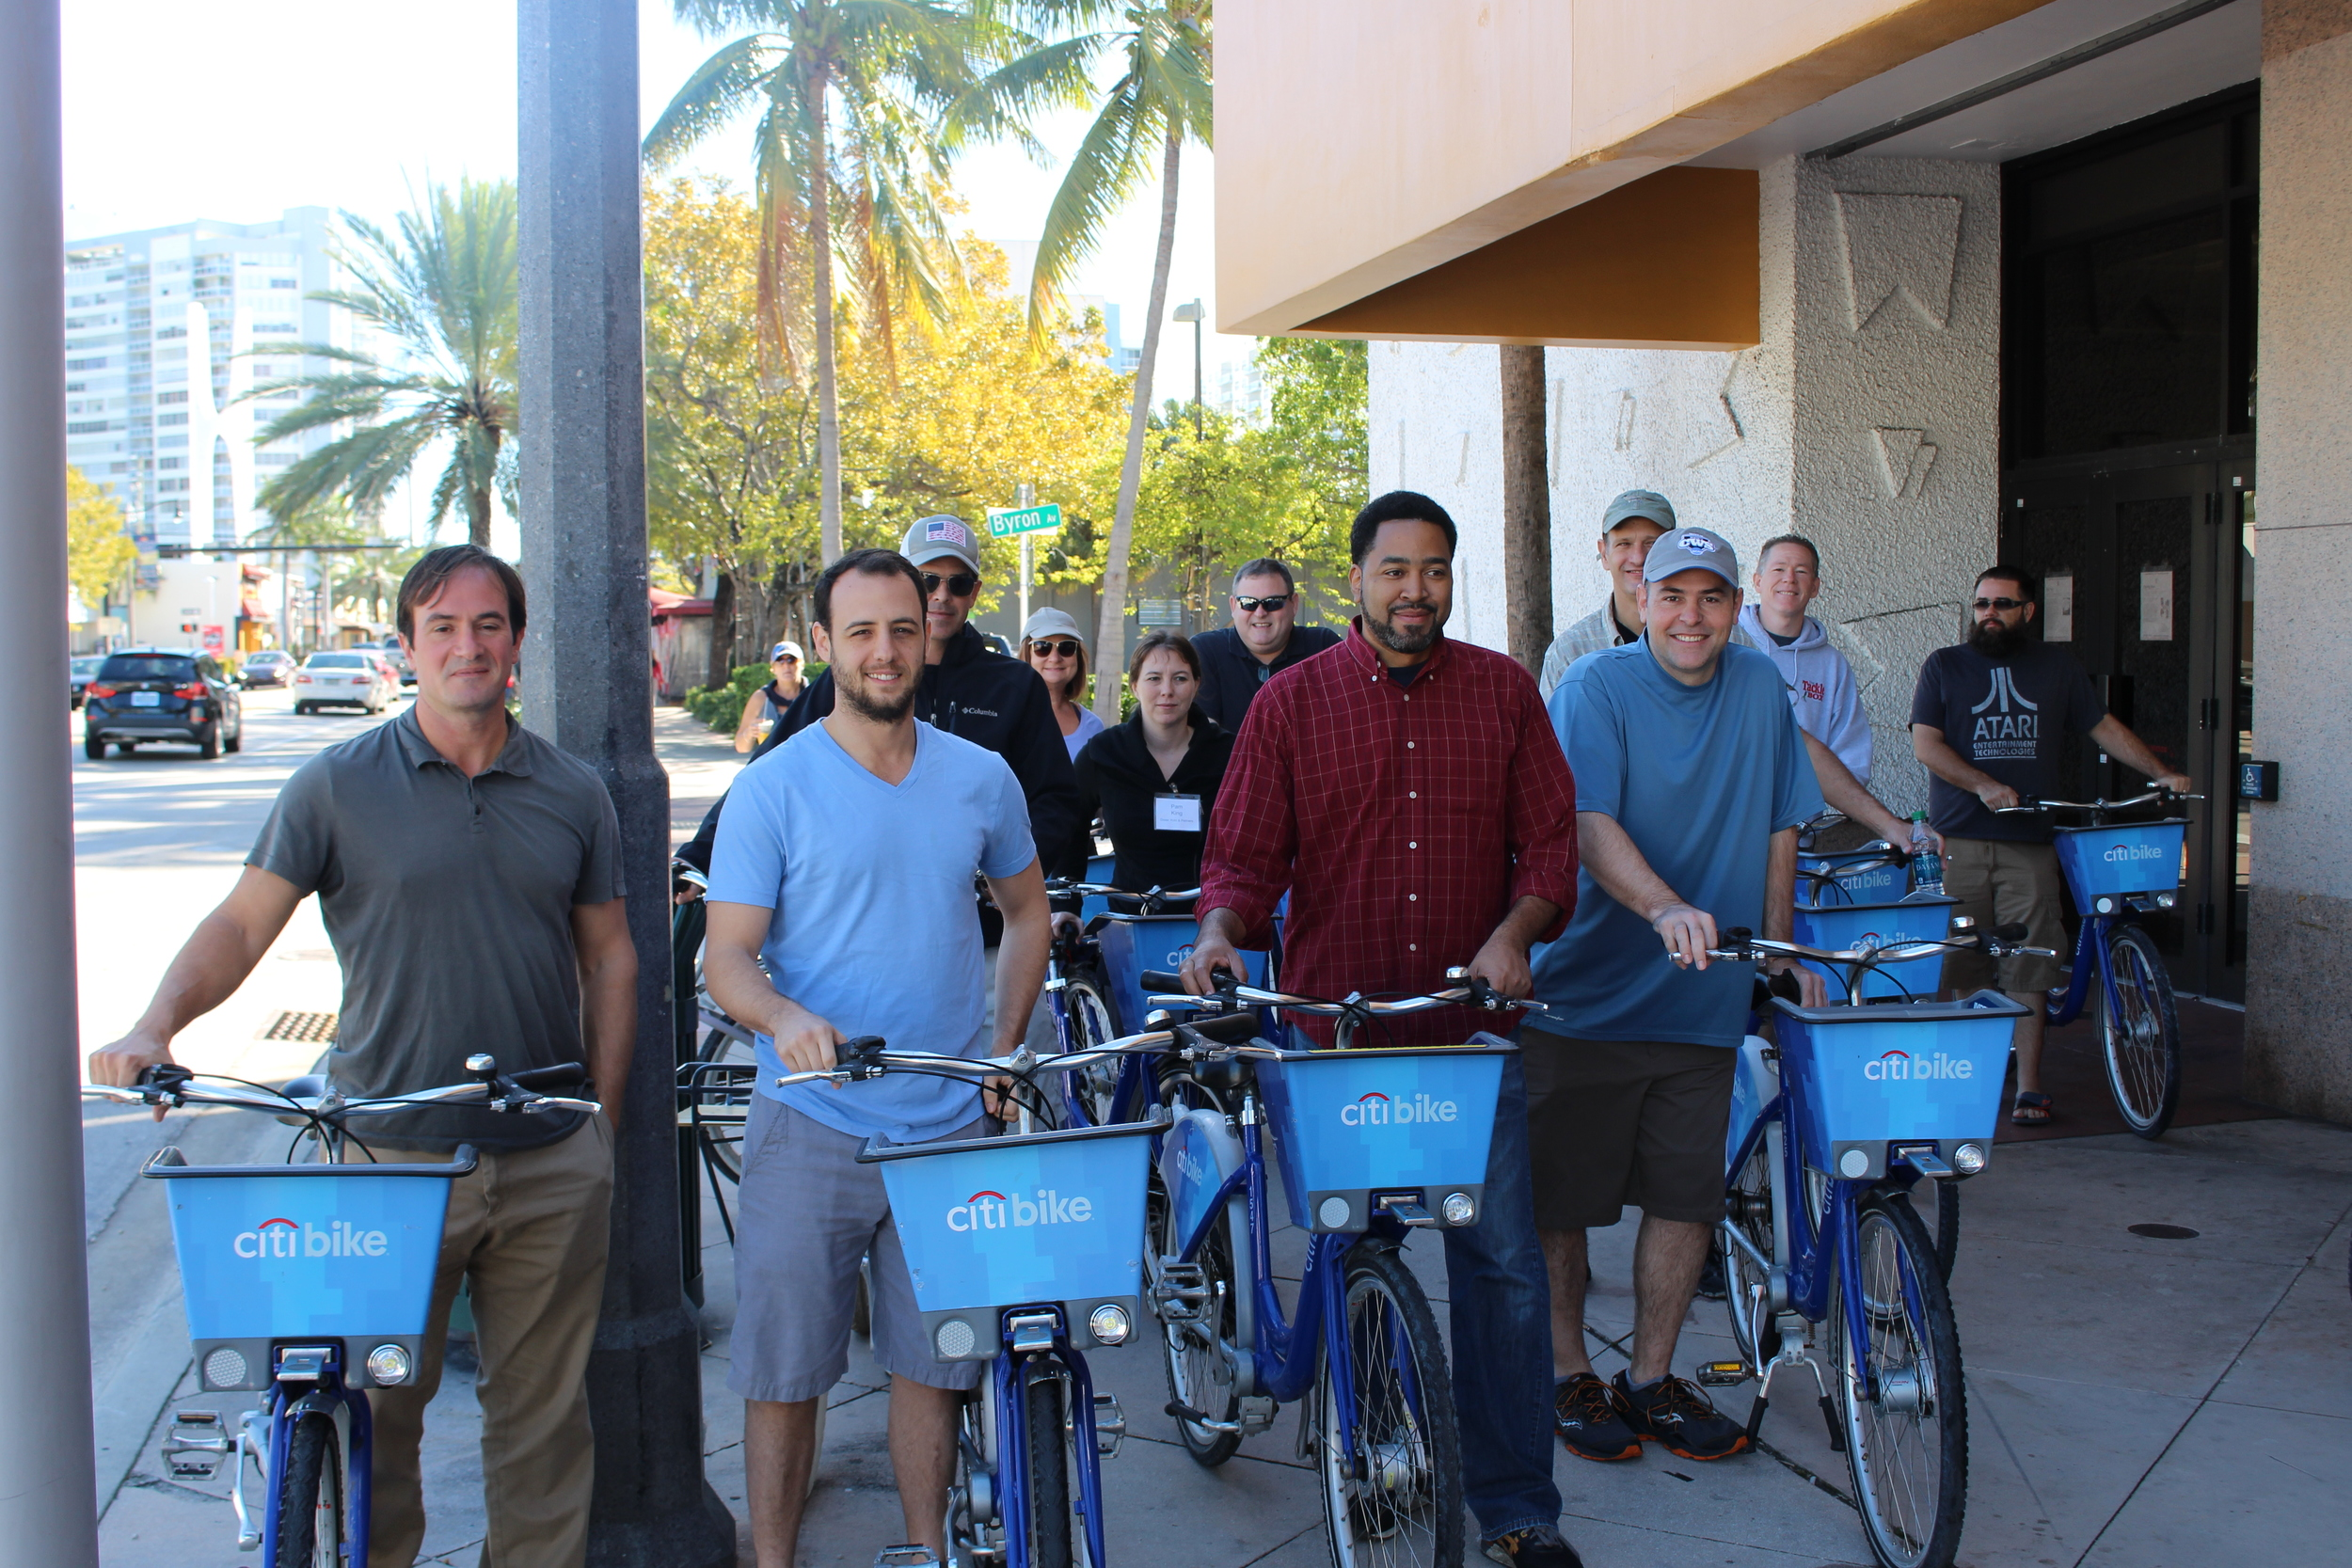 (Left to Right, front): Dover, Kohl & Partners' Principal Jason King, Planner Zach Parnas, and Project Director Hernan Guerrero participating in a bike tour as part of the North Beach Master Plan charrette.